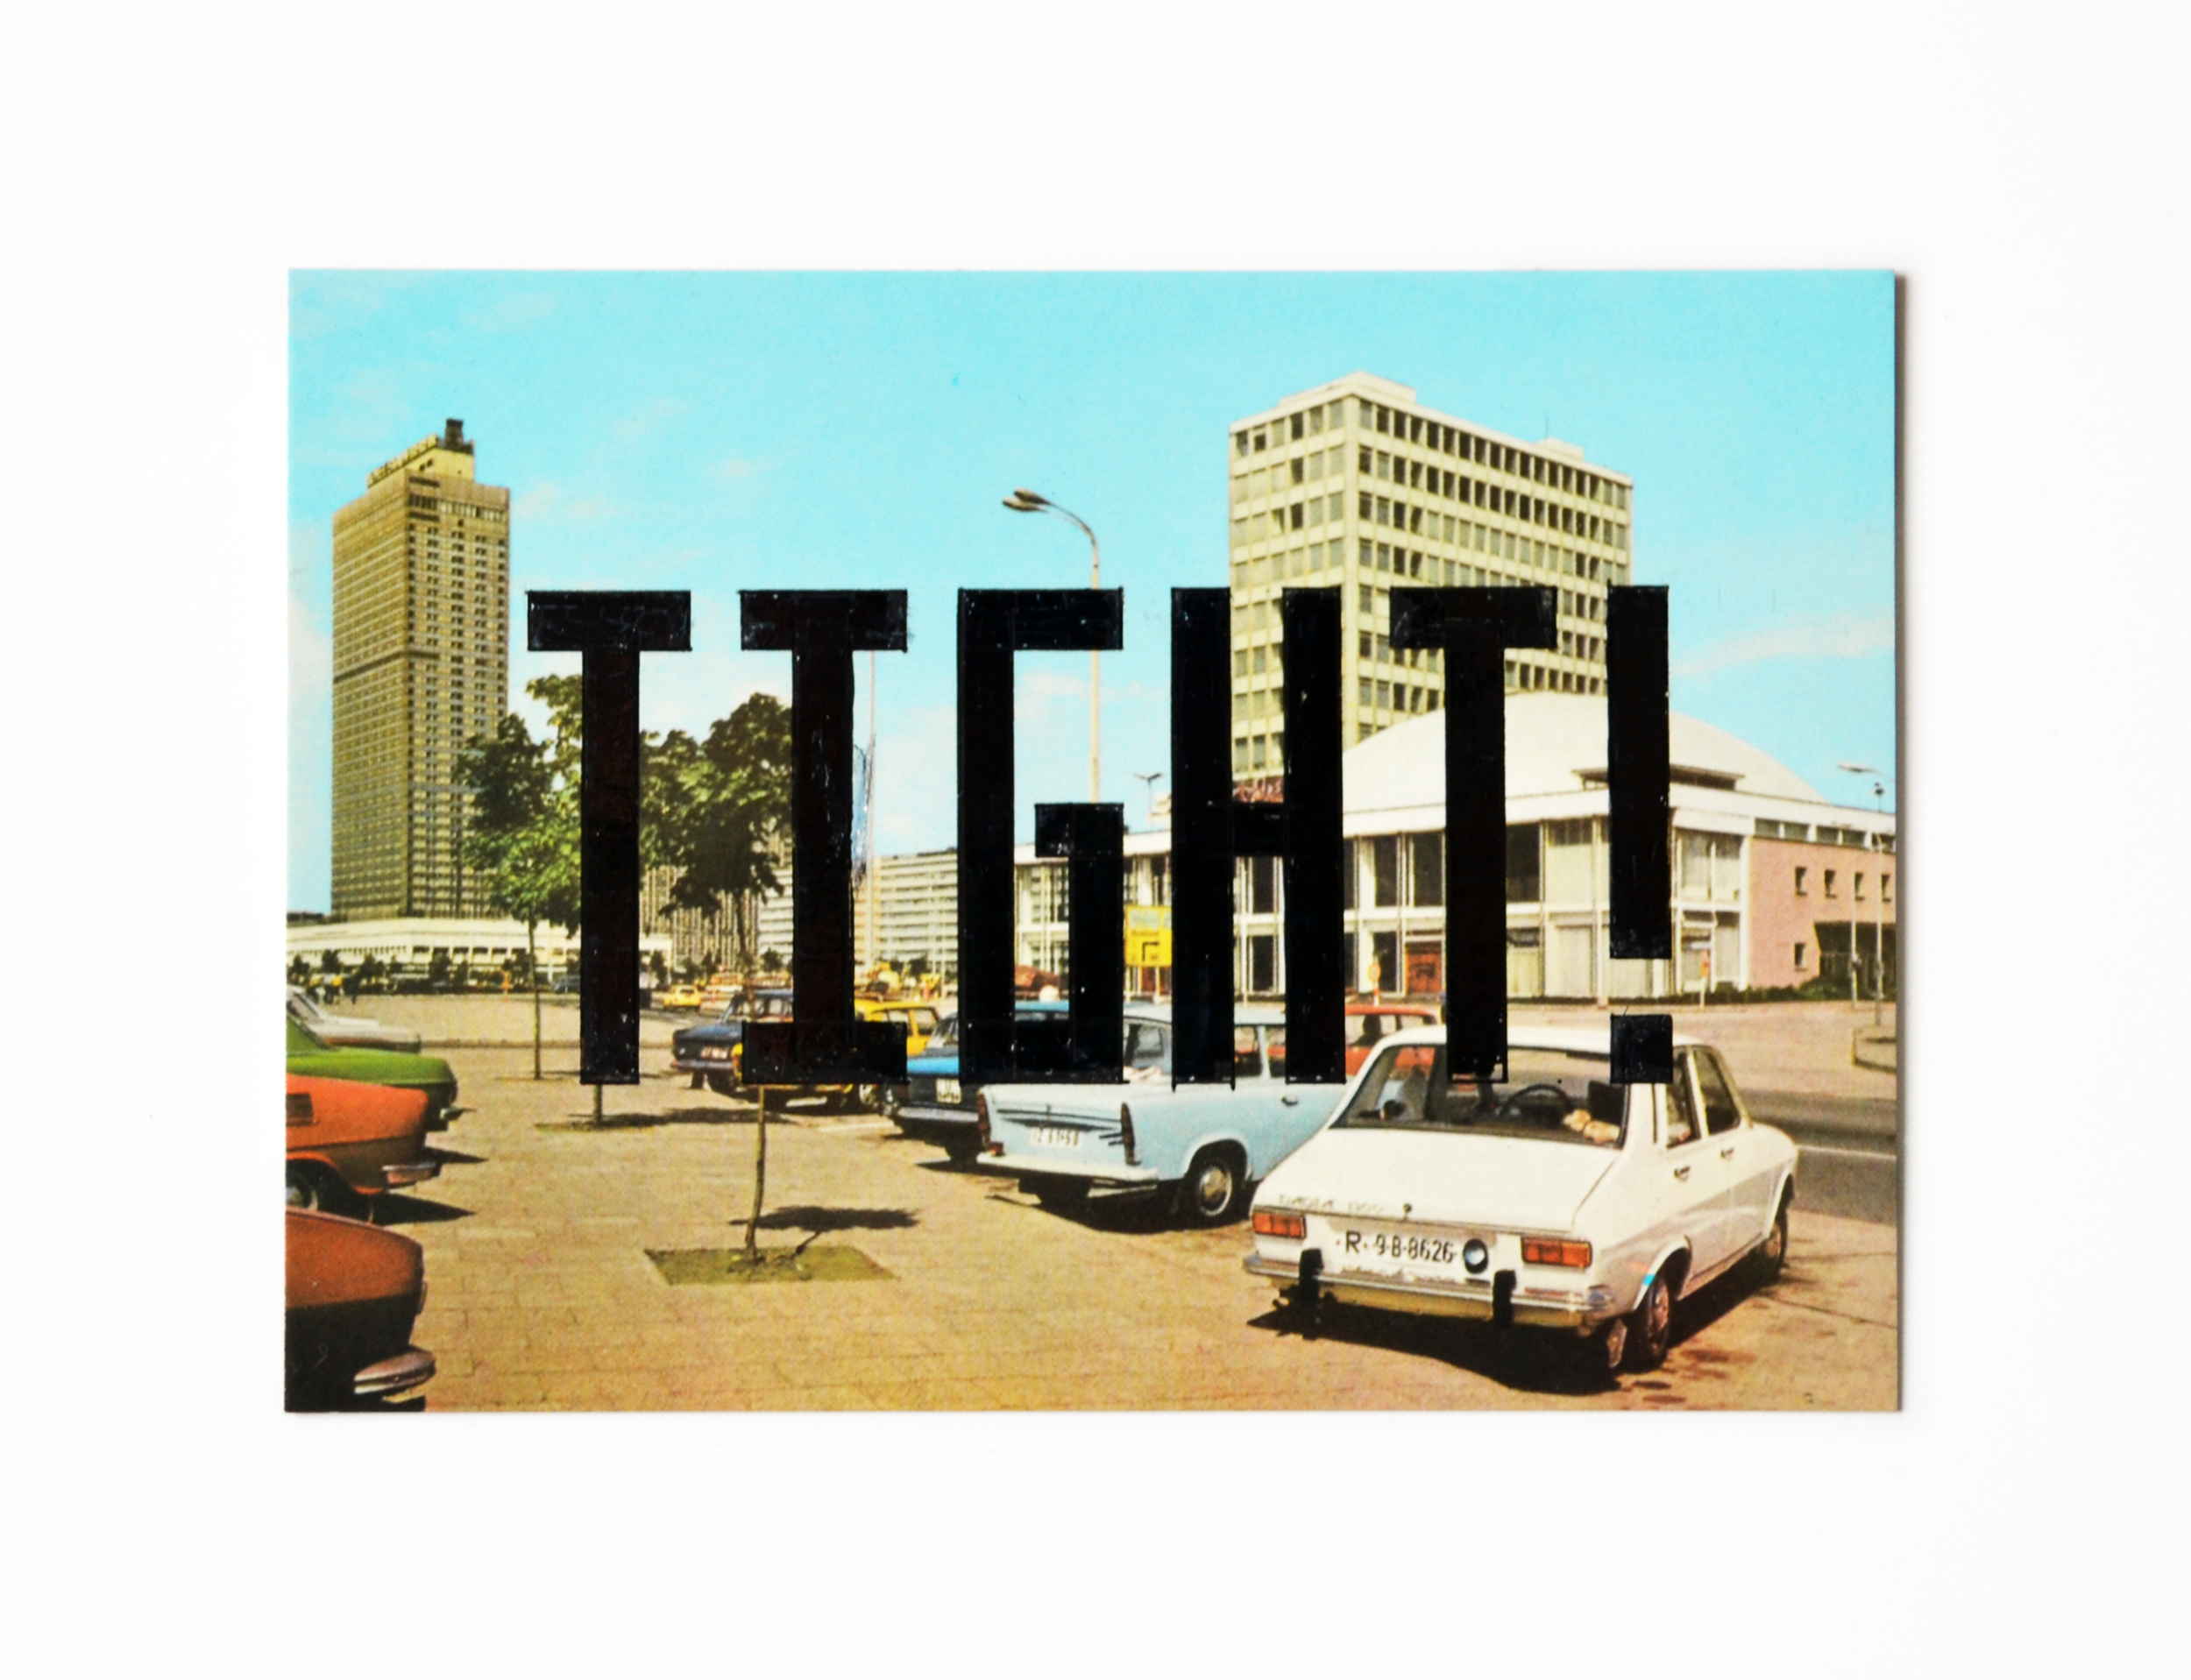 Postcard_2016_76_a_Dresdeners.png